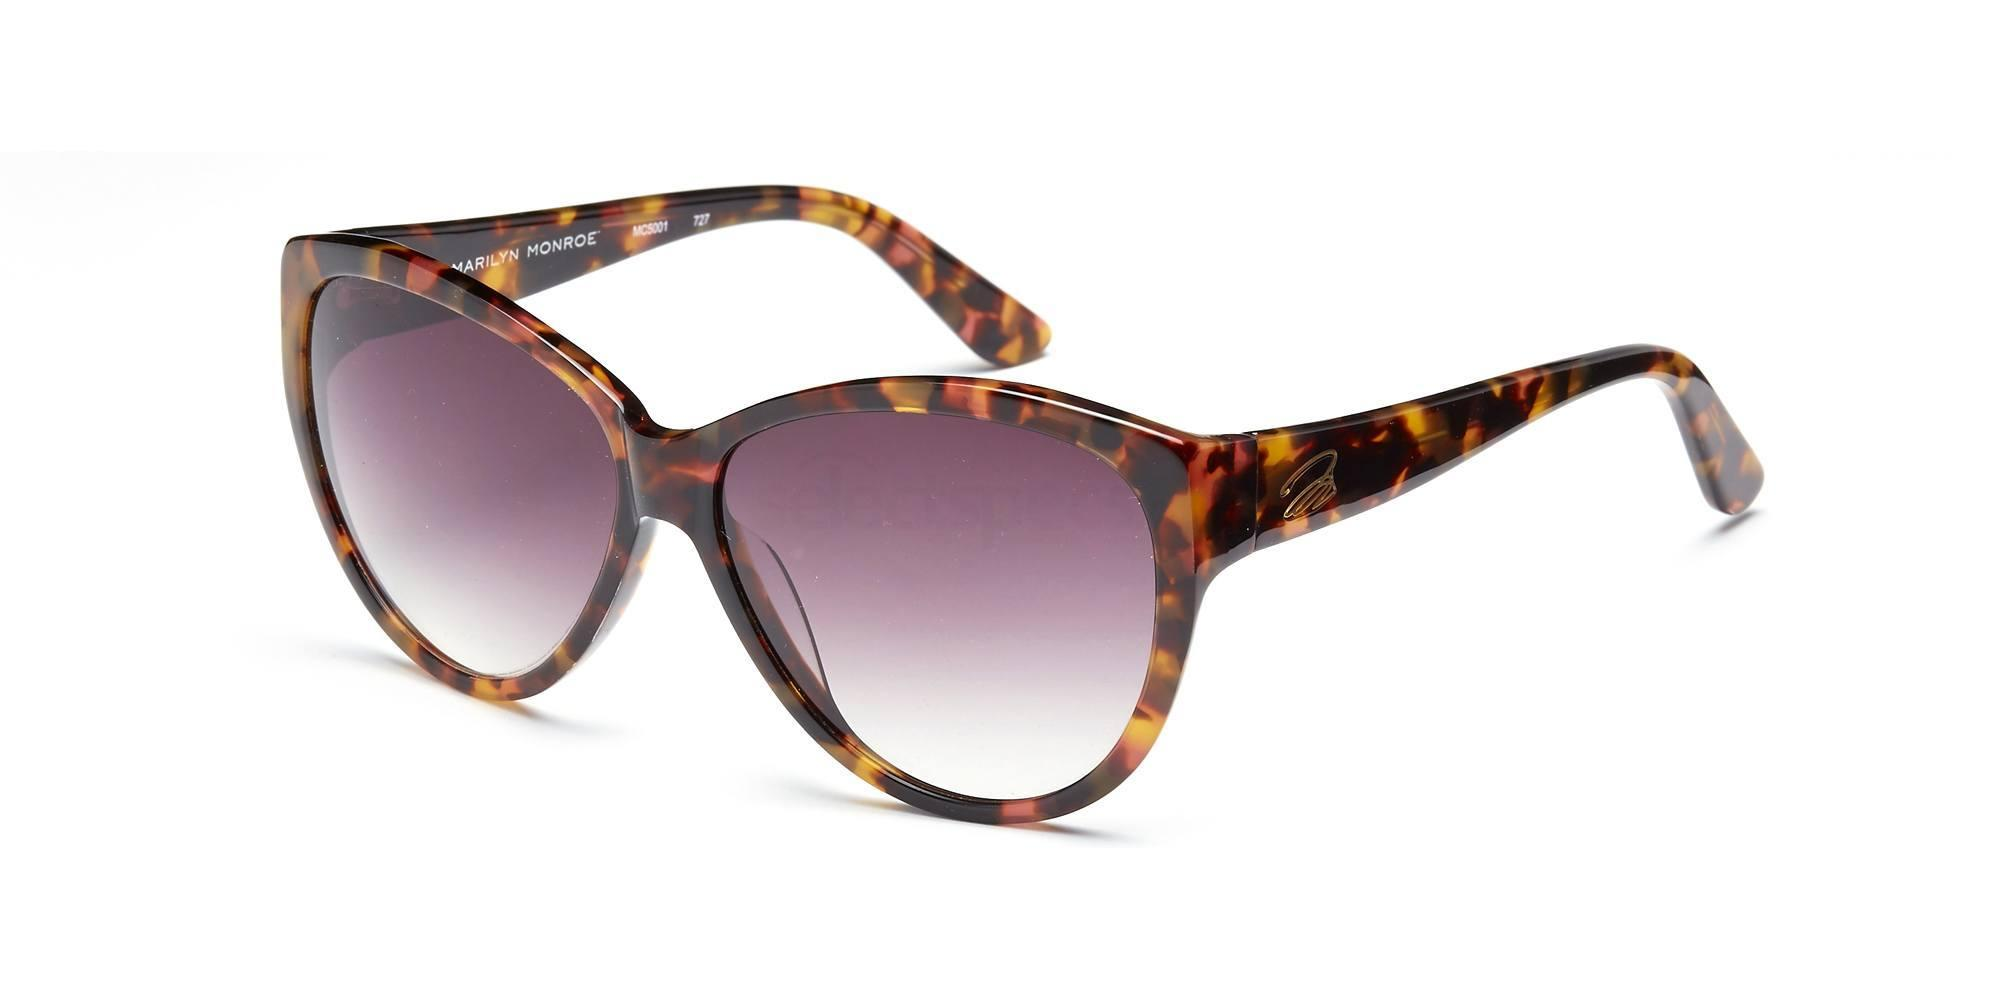 C1 MMS5001 Sunglasses, Marilyn Monroe